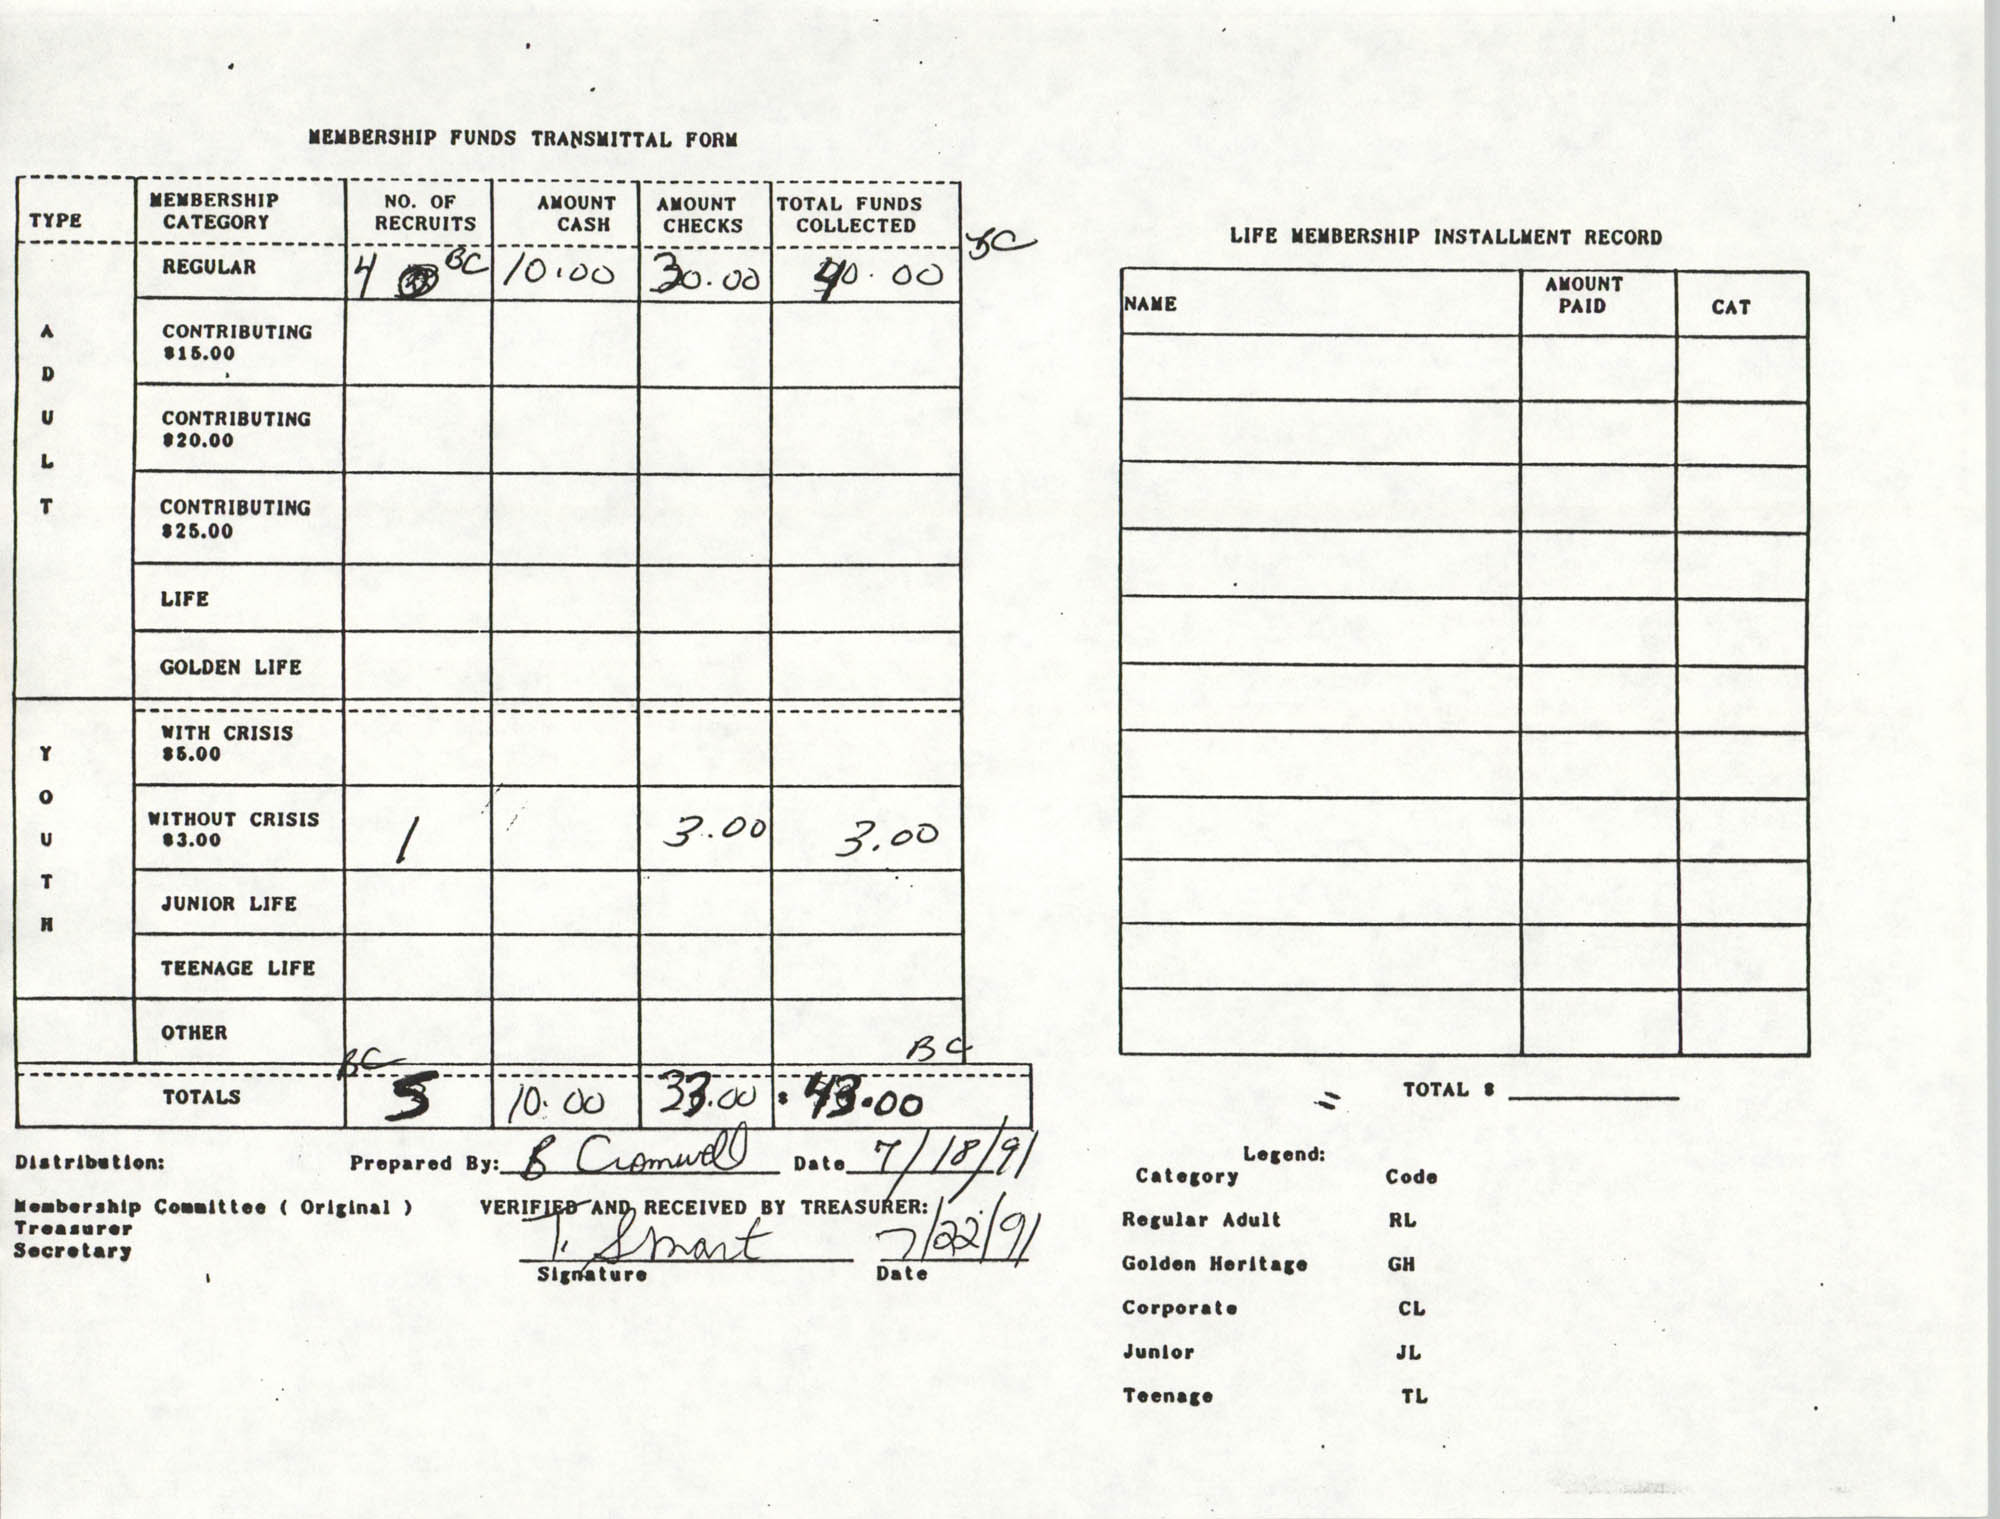 Charleston Branch of the NAACP Funds Transmittal Forms, July 1991, Page 6